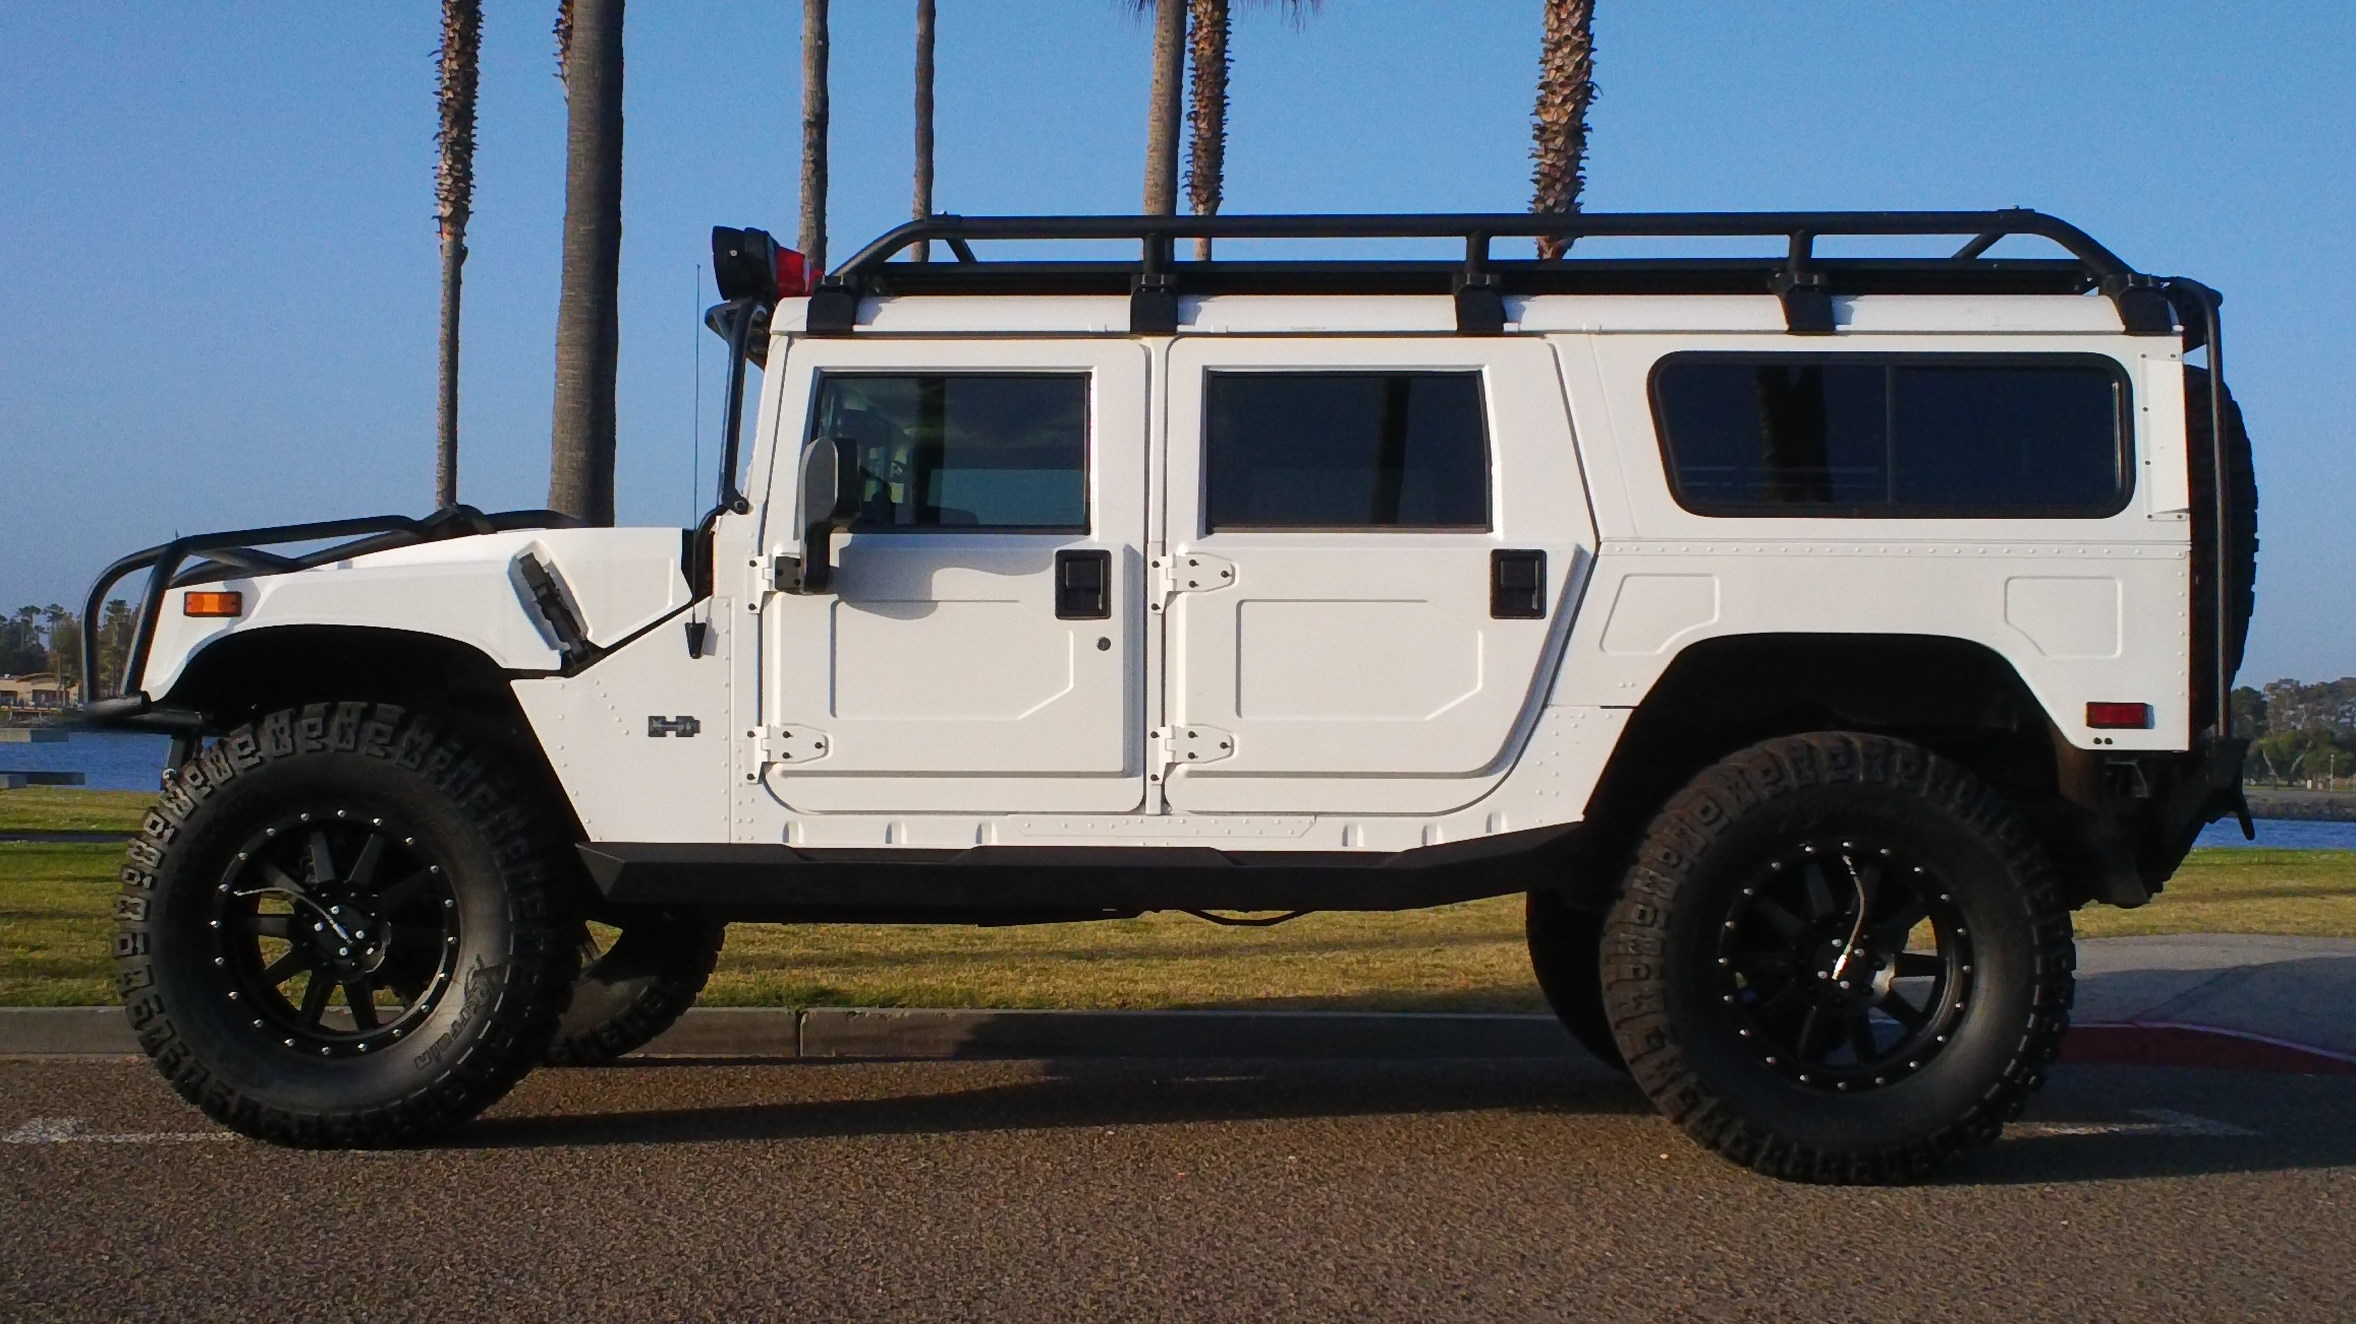 Hummer H1 Photo: Thehummerguy